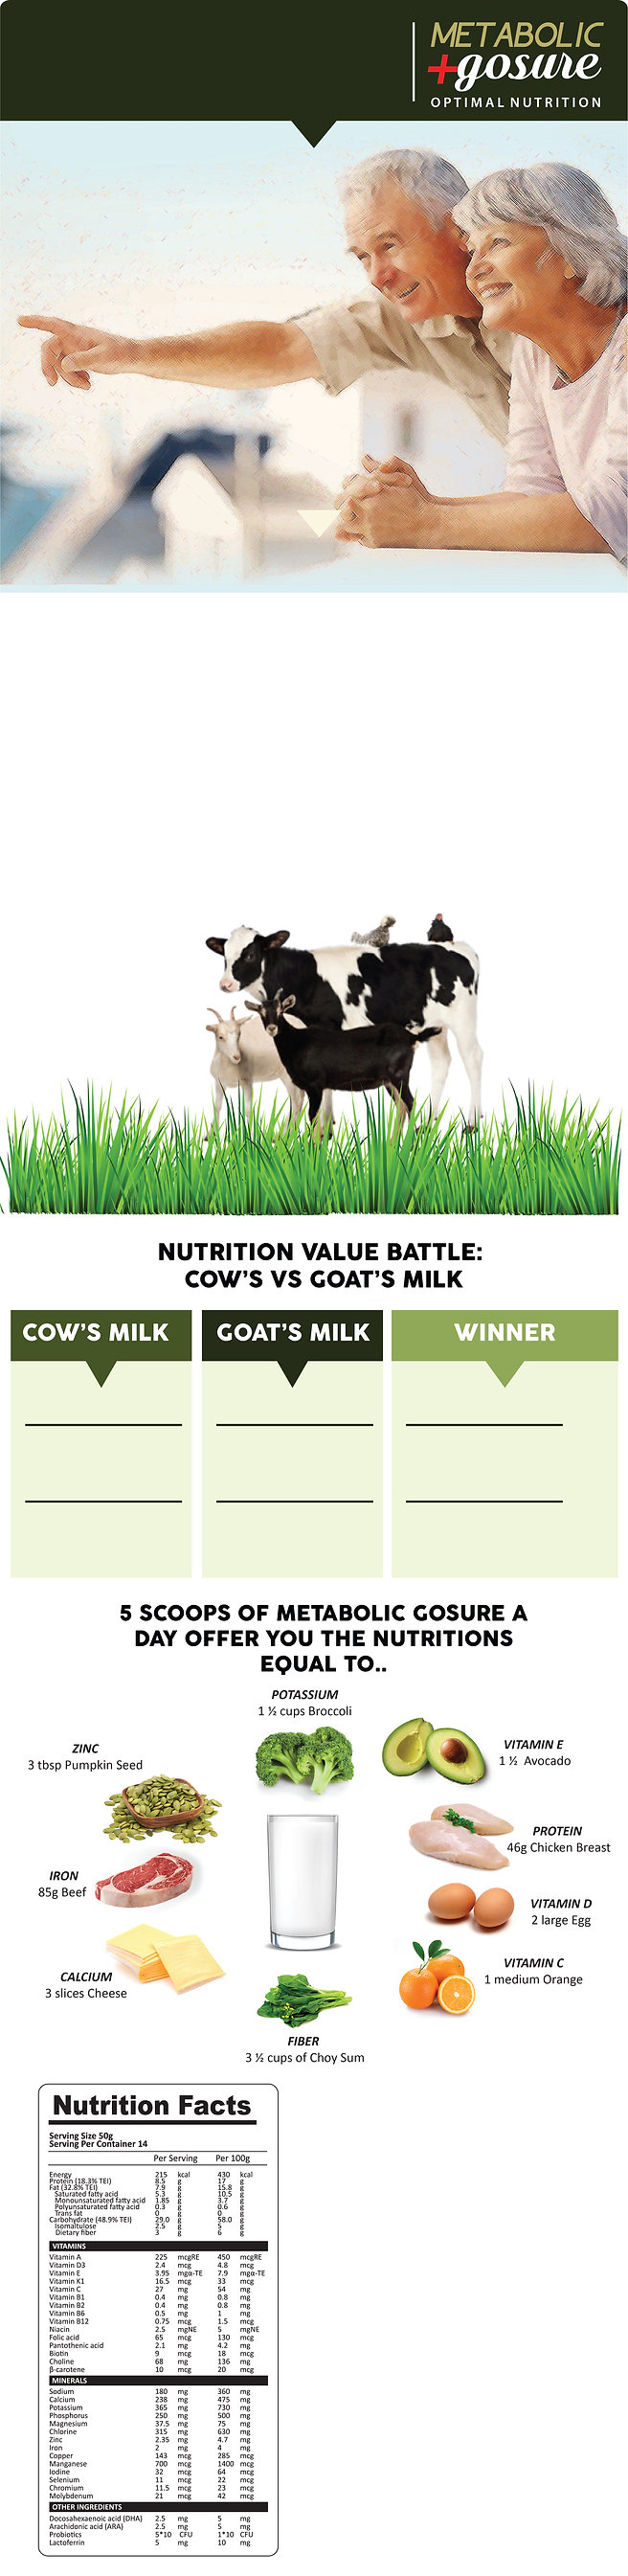 The comparison between cow's and goat's milk